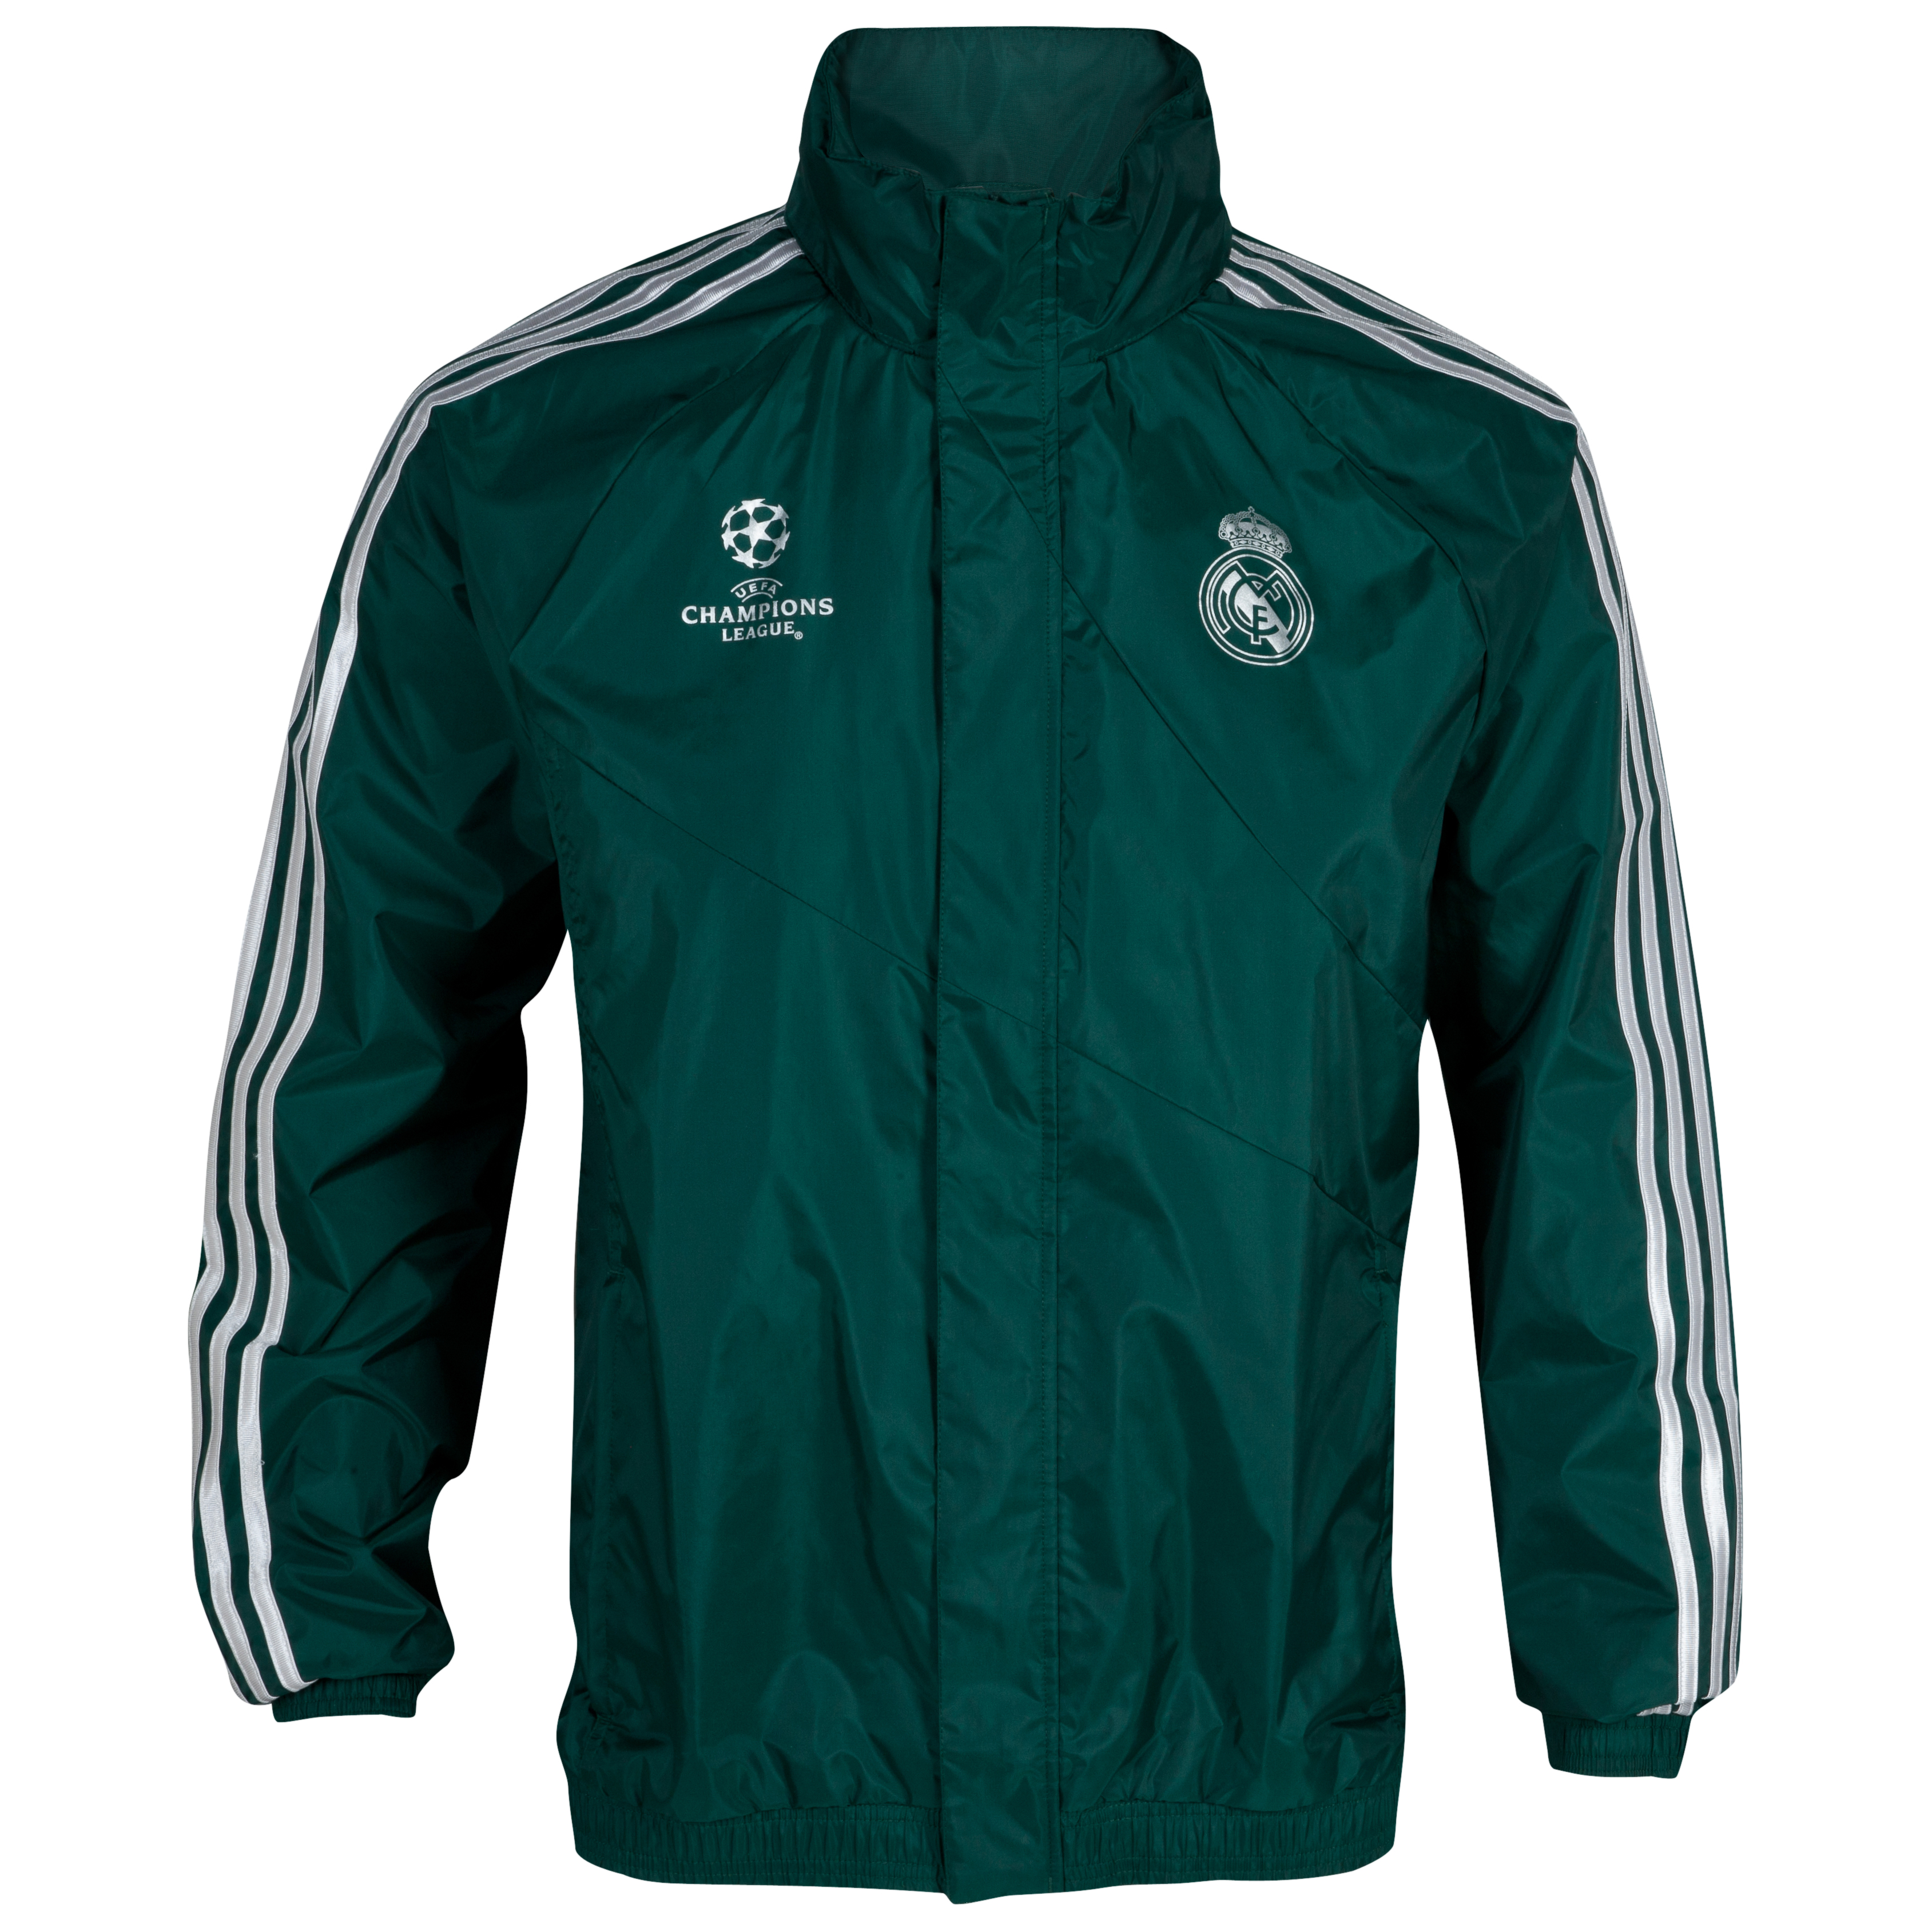 Chaqueta de Entrenamiento Real Madrid de la Liga de Campeones - Chaqueta para la Lluvia